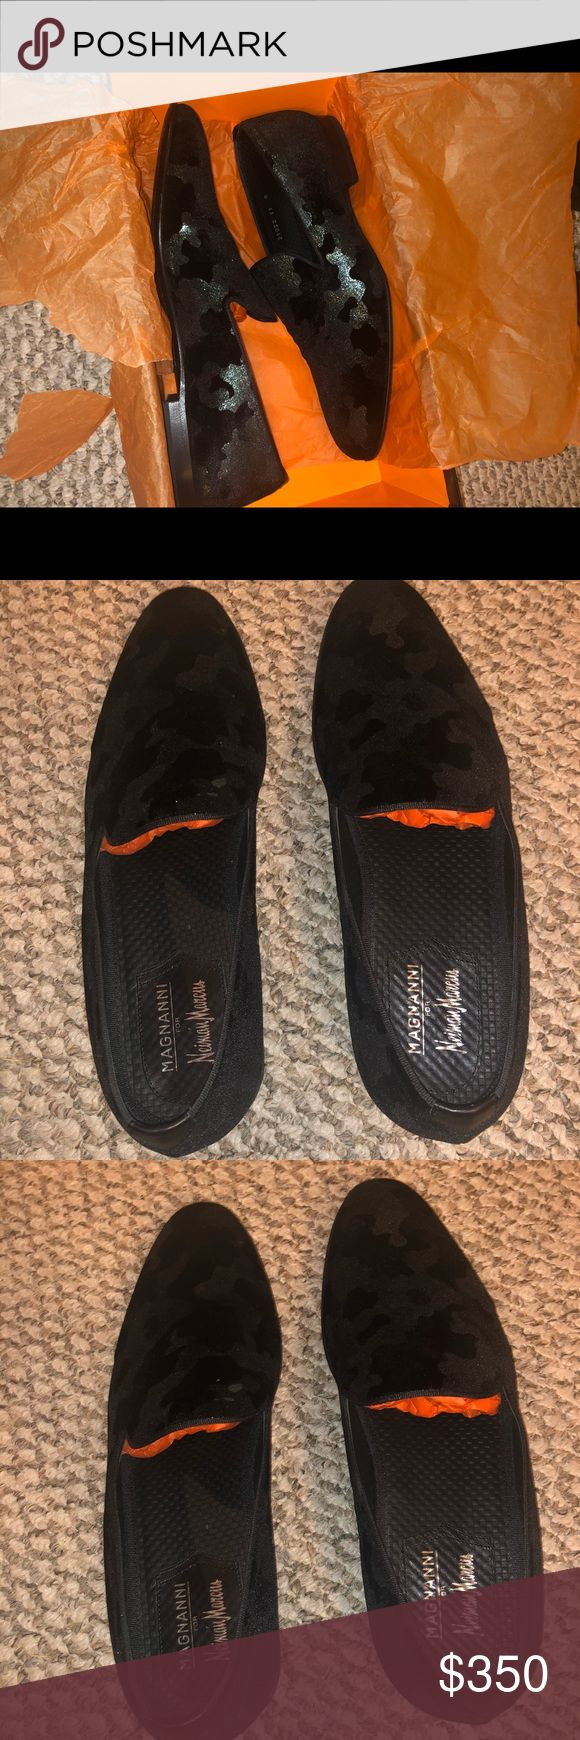 Designer Loafers Magnanni by Neiman Marcus, Worn once, still in amazing conditio...